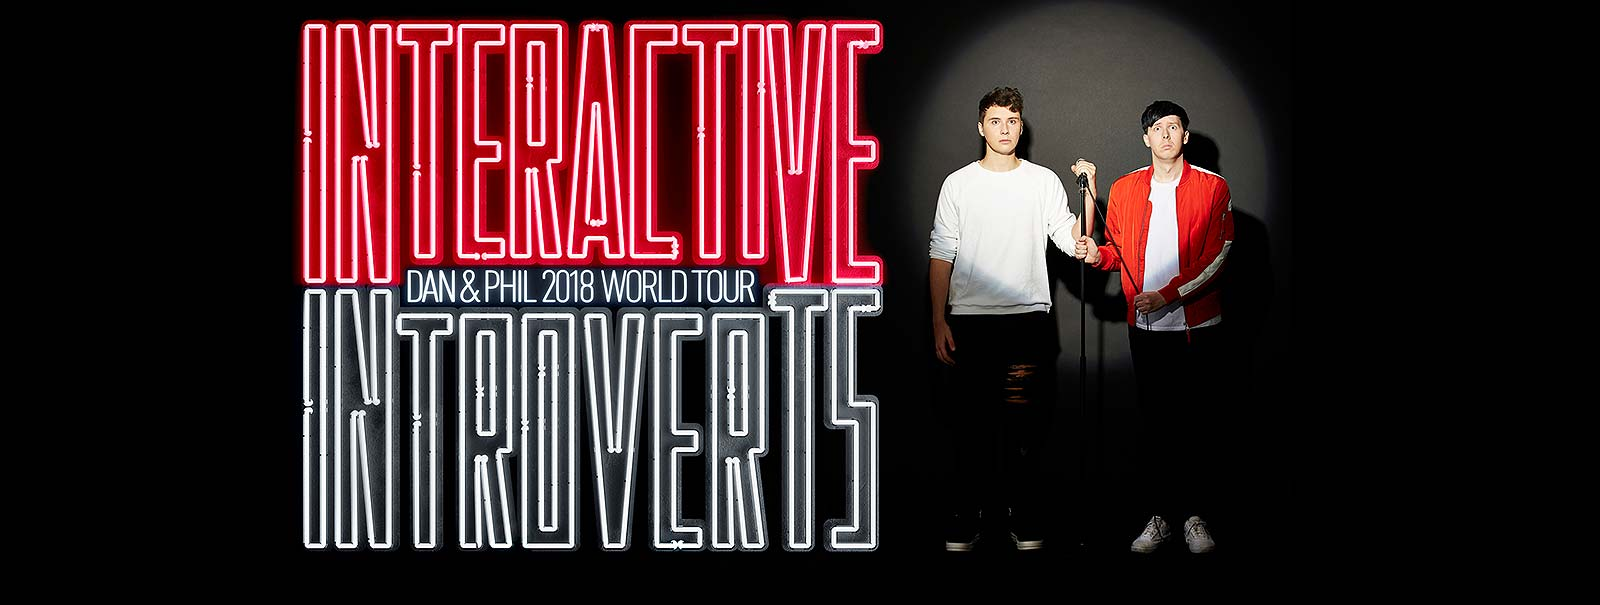 More Info - Dan and Phil 2018 World Tour — Interactive Introverts